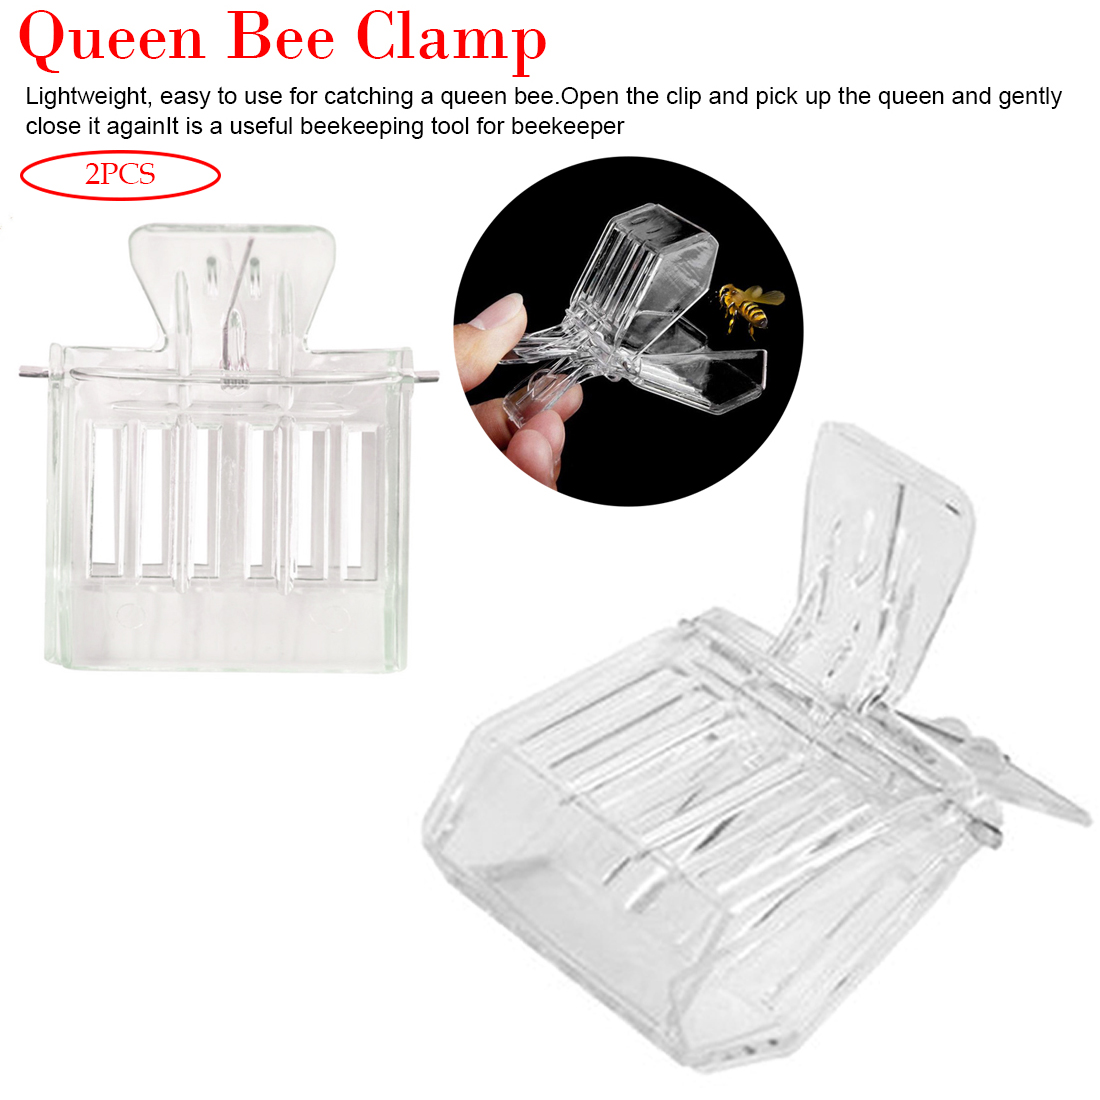 2pcs Queen Bee Catcher Cage Beekeeping Tools Isolation Room Beekeeping Clip  Colorless Plastic Bee Clip Beekeeper Tool